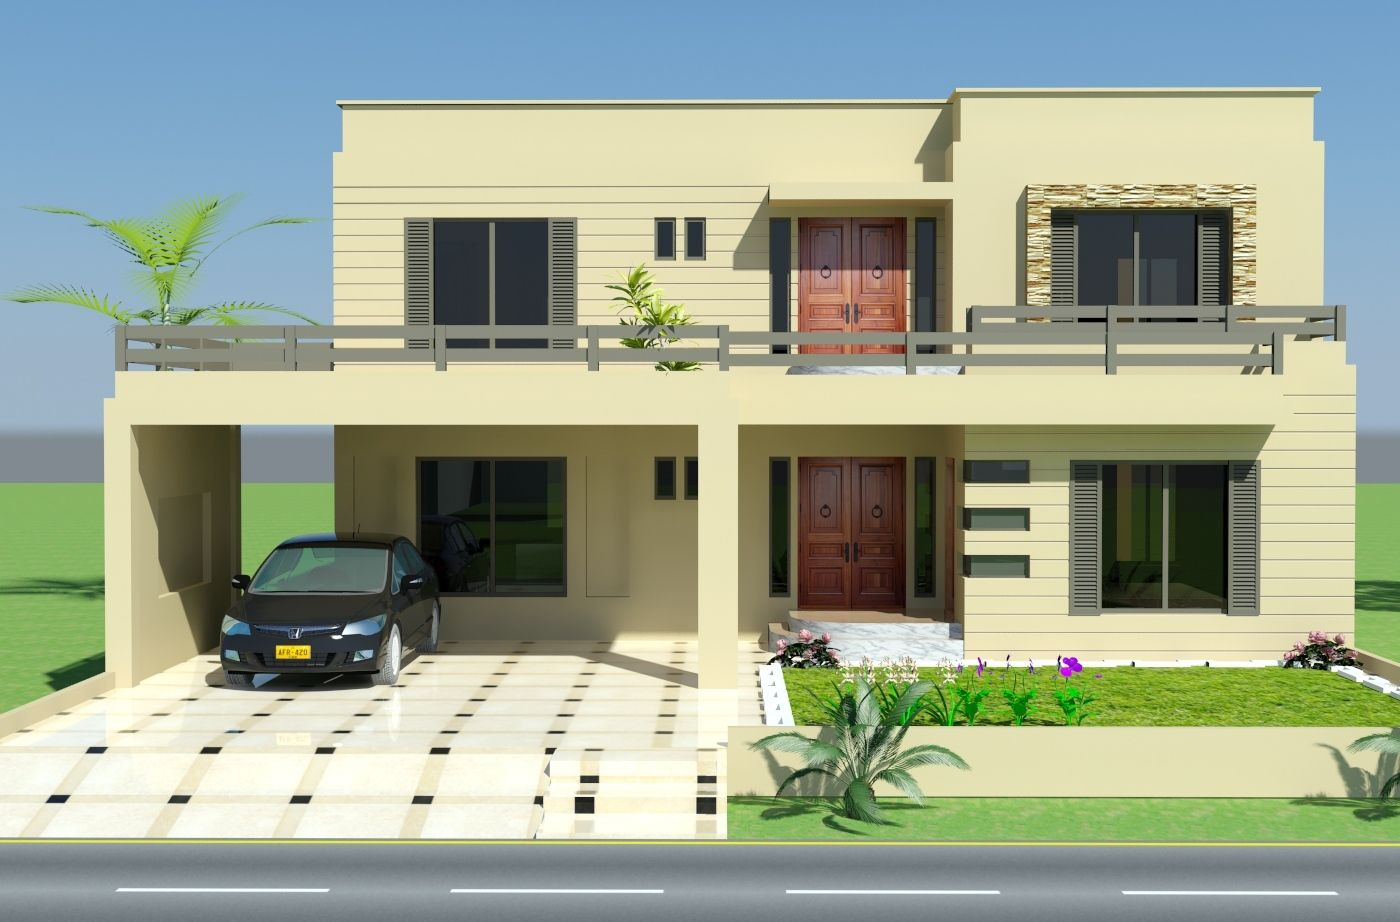 Exterior house design front elevation mi futura casa for Simple house front design